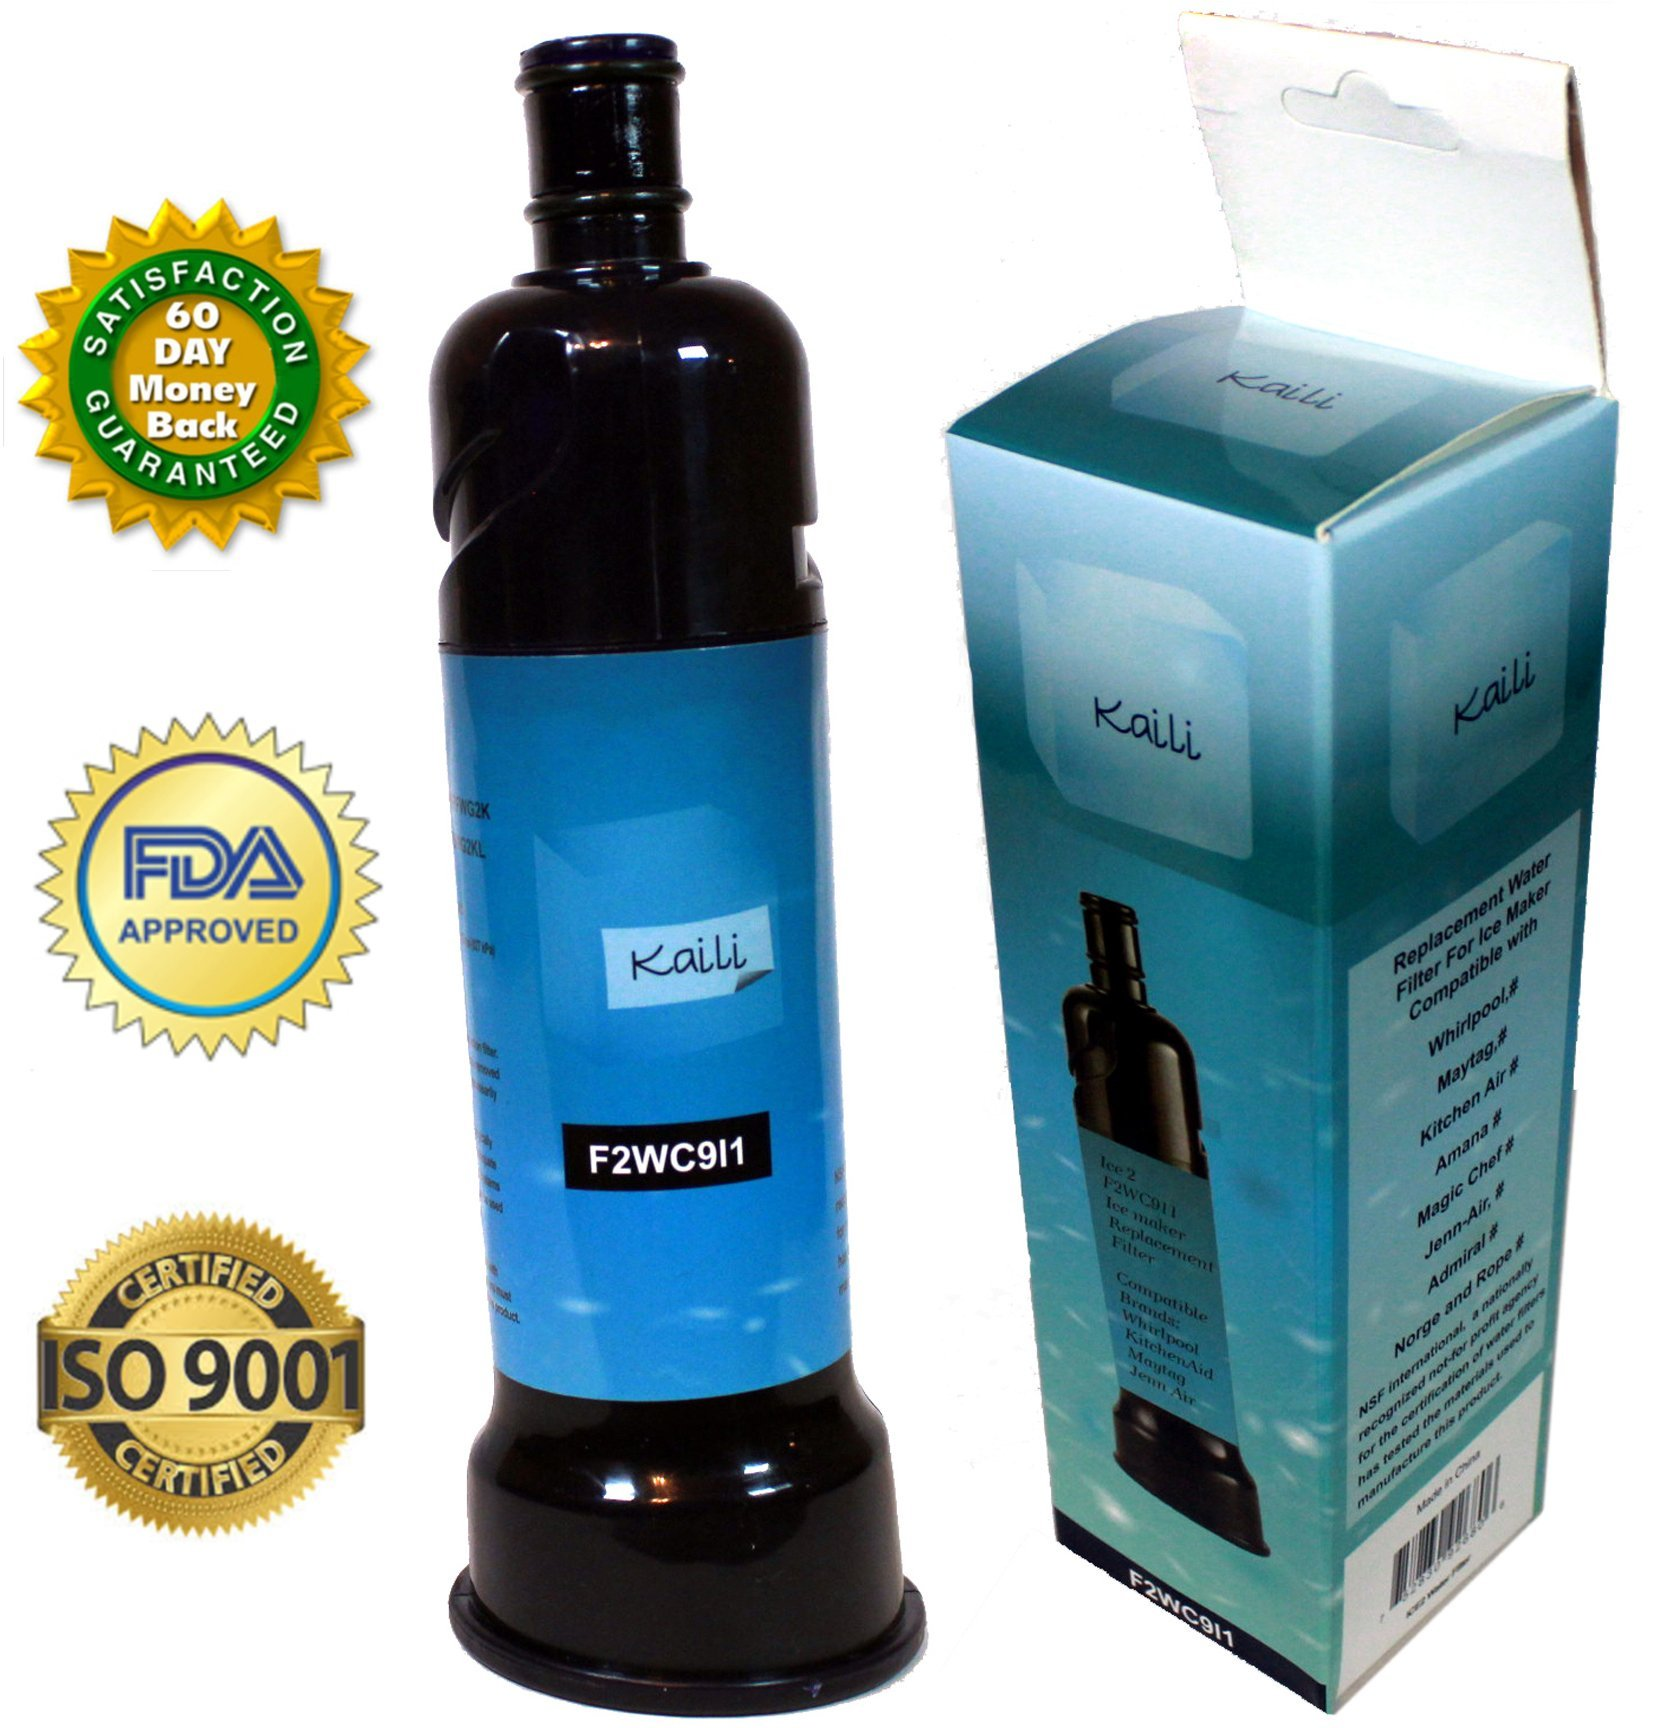 ICE2 F2WC9I1 Certified Refrigerator Ice Maker Filter by Kaili ...